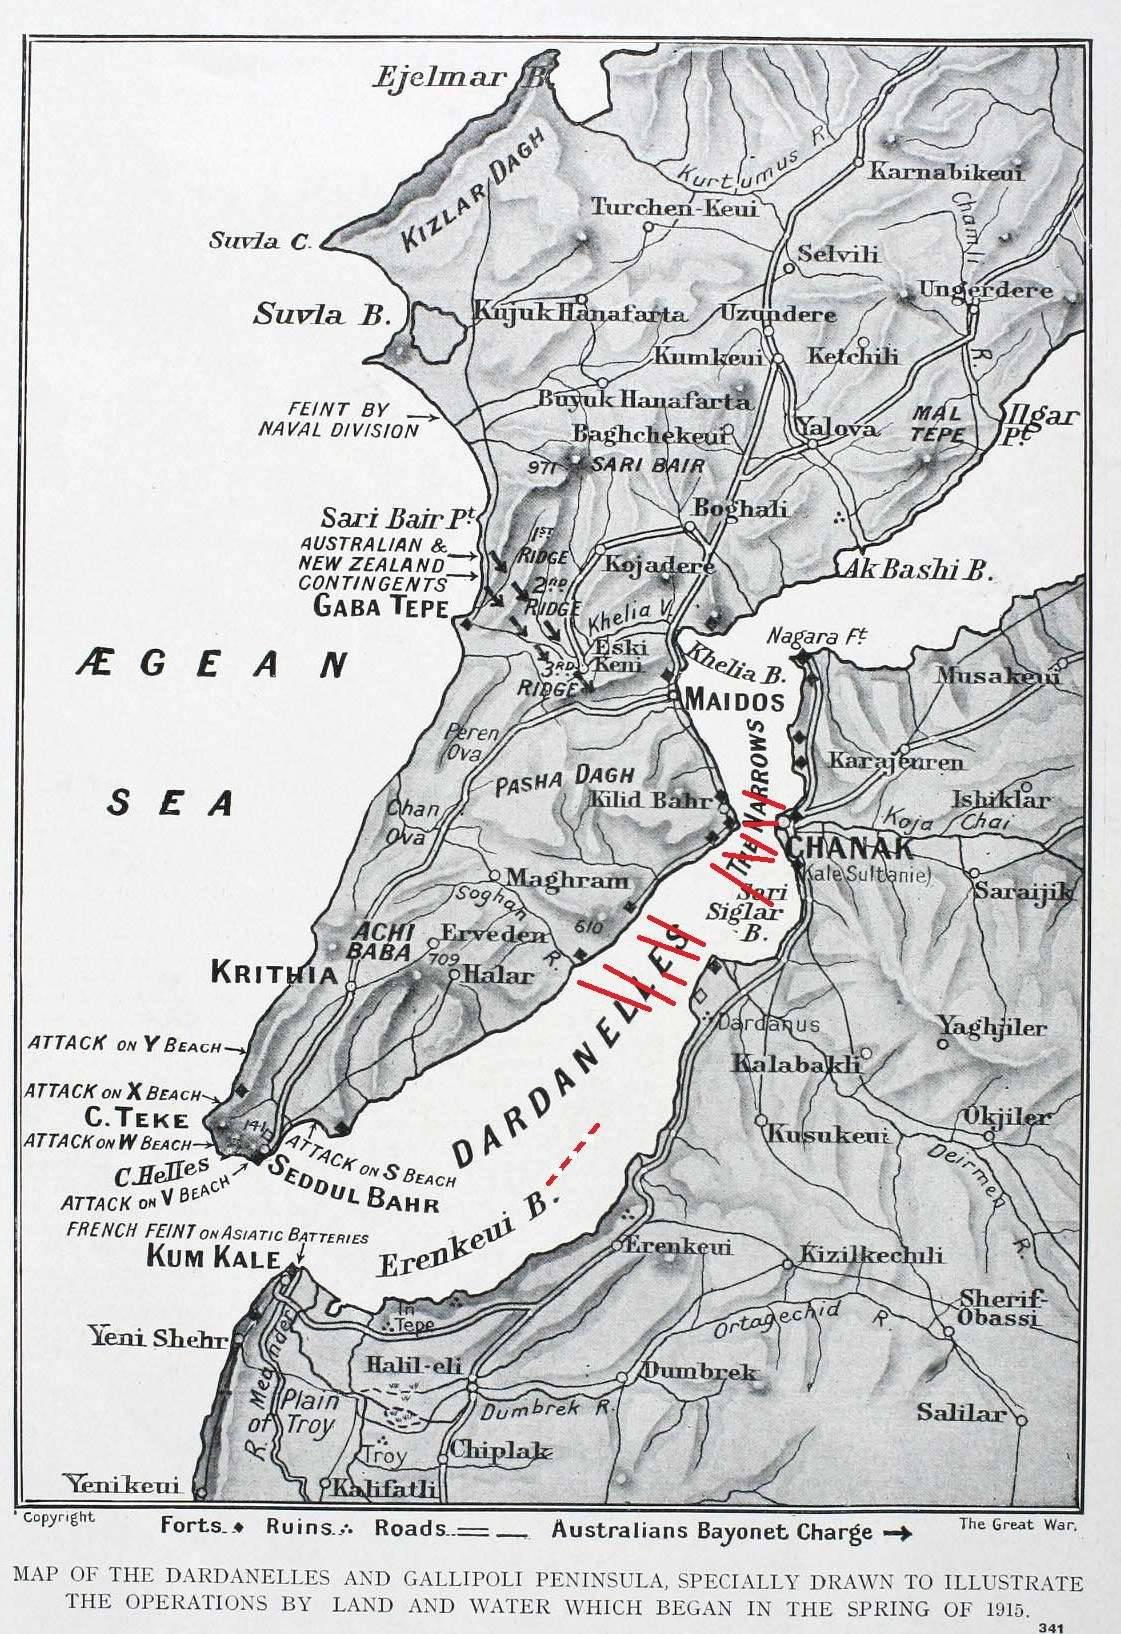 1915 map of the Dardanelles Straits. The added red lines show the mines known to the Allies. The hatched line of mines was unknown. ANMM collection